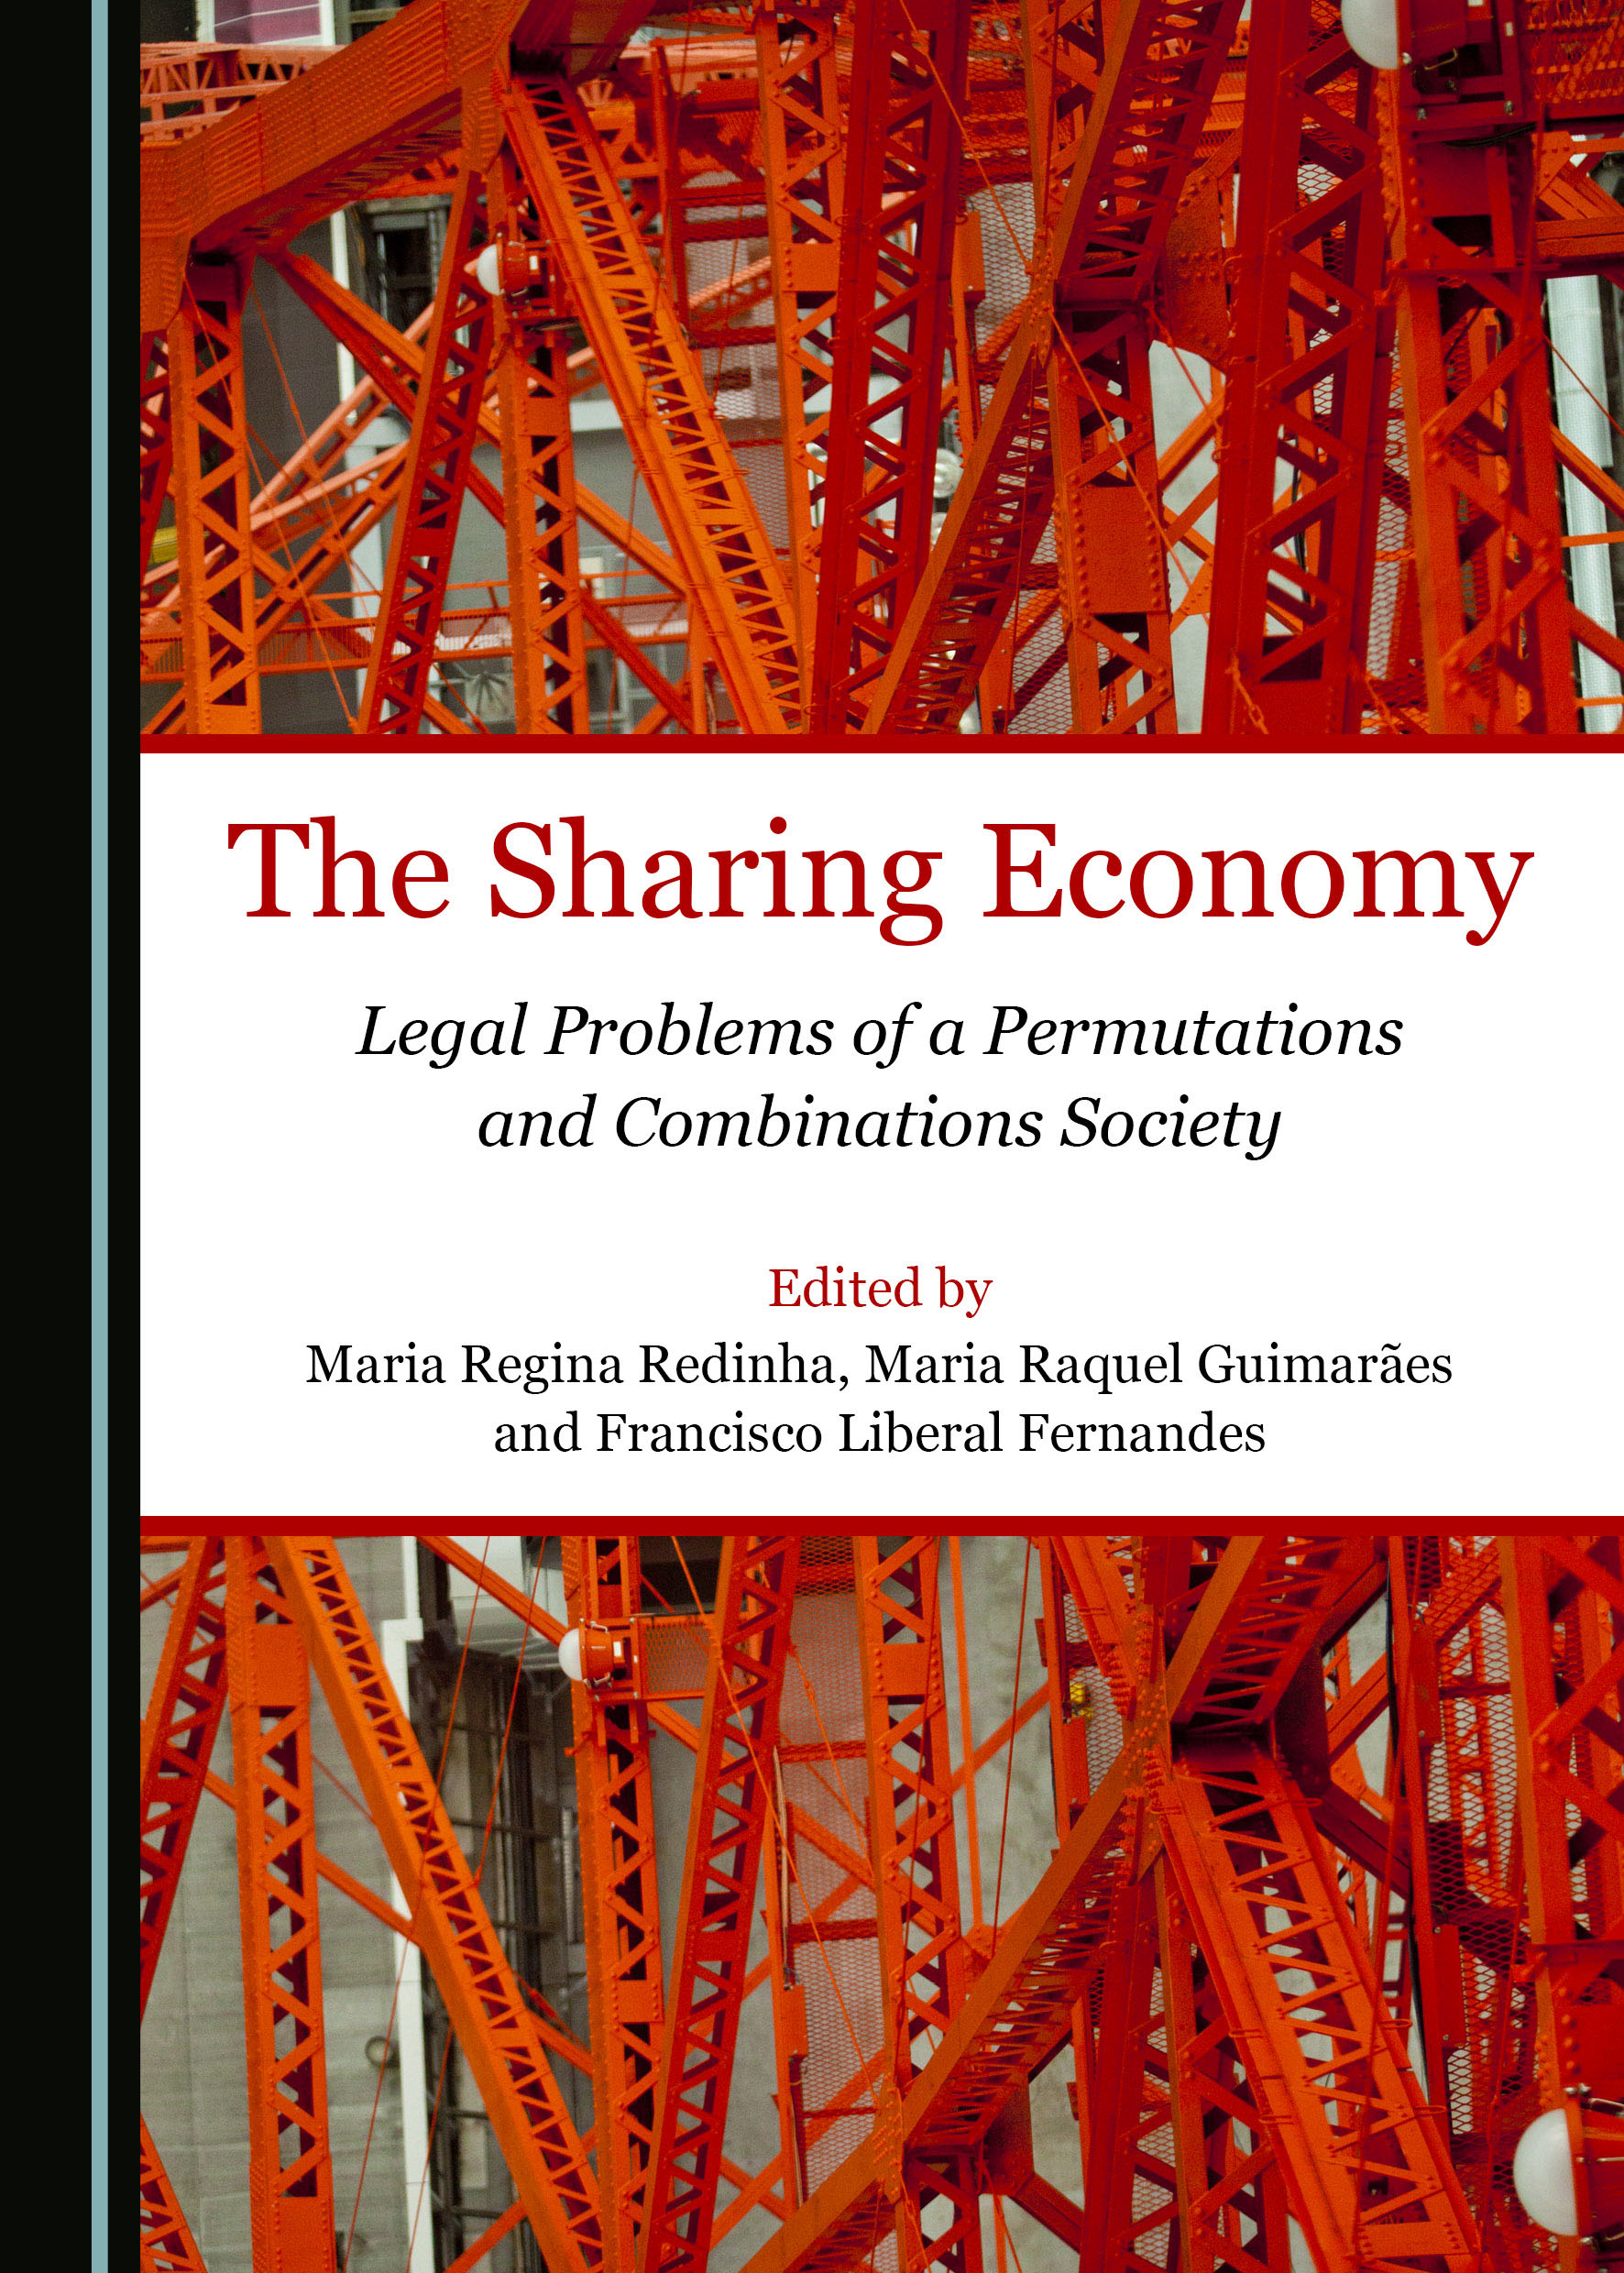 The Sharing Economy: Legal Problems of a Permutations and Combinations Society